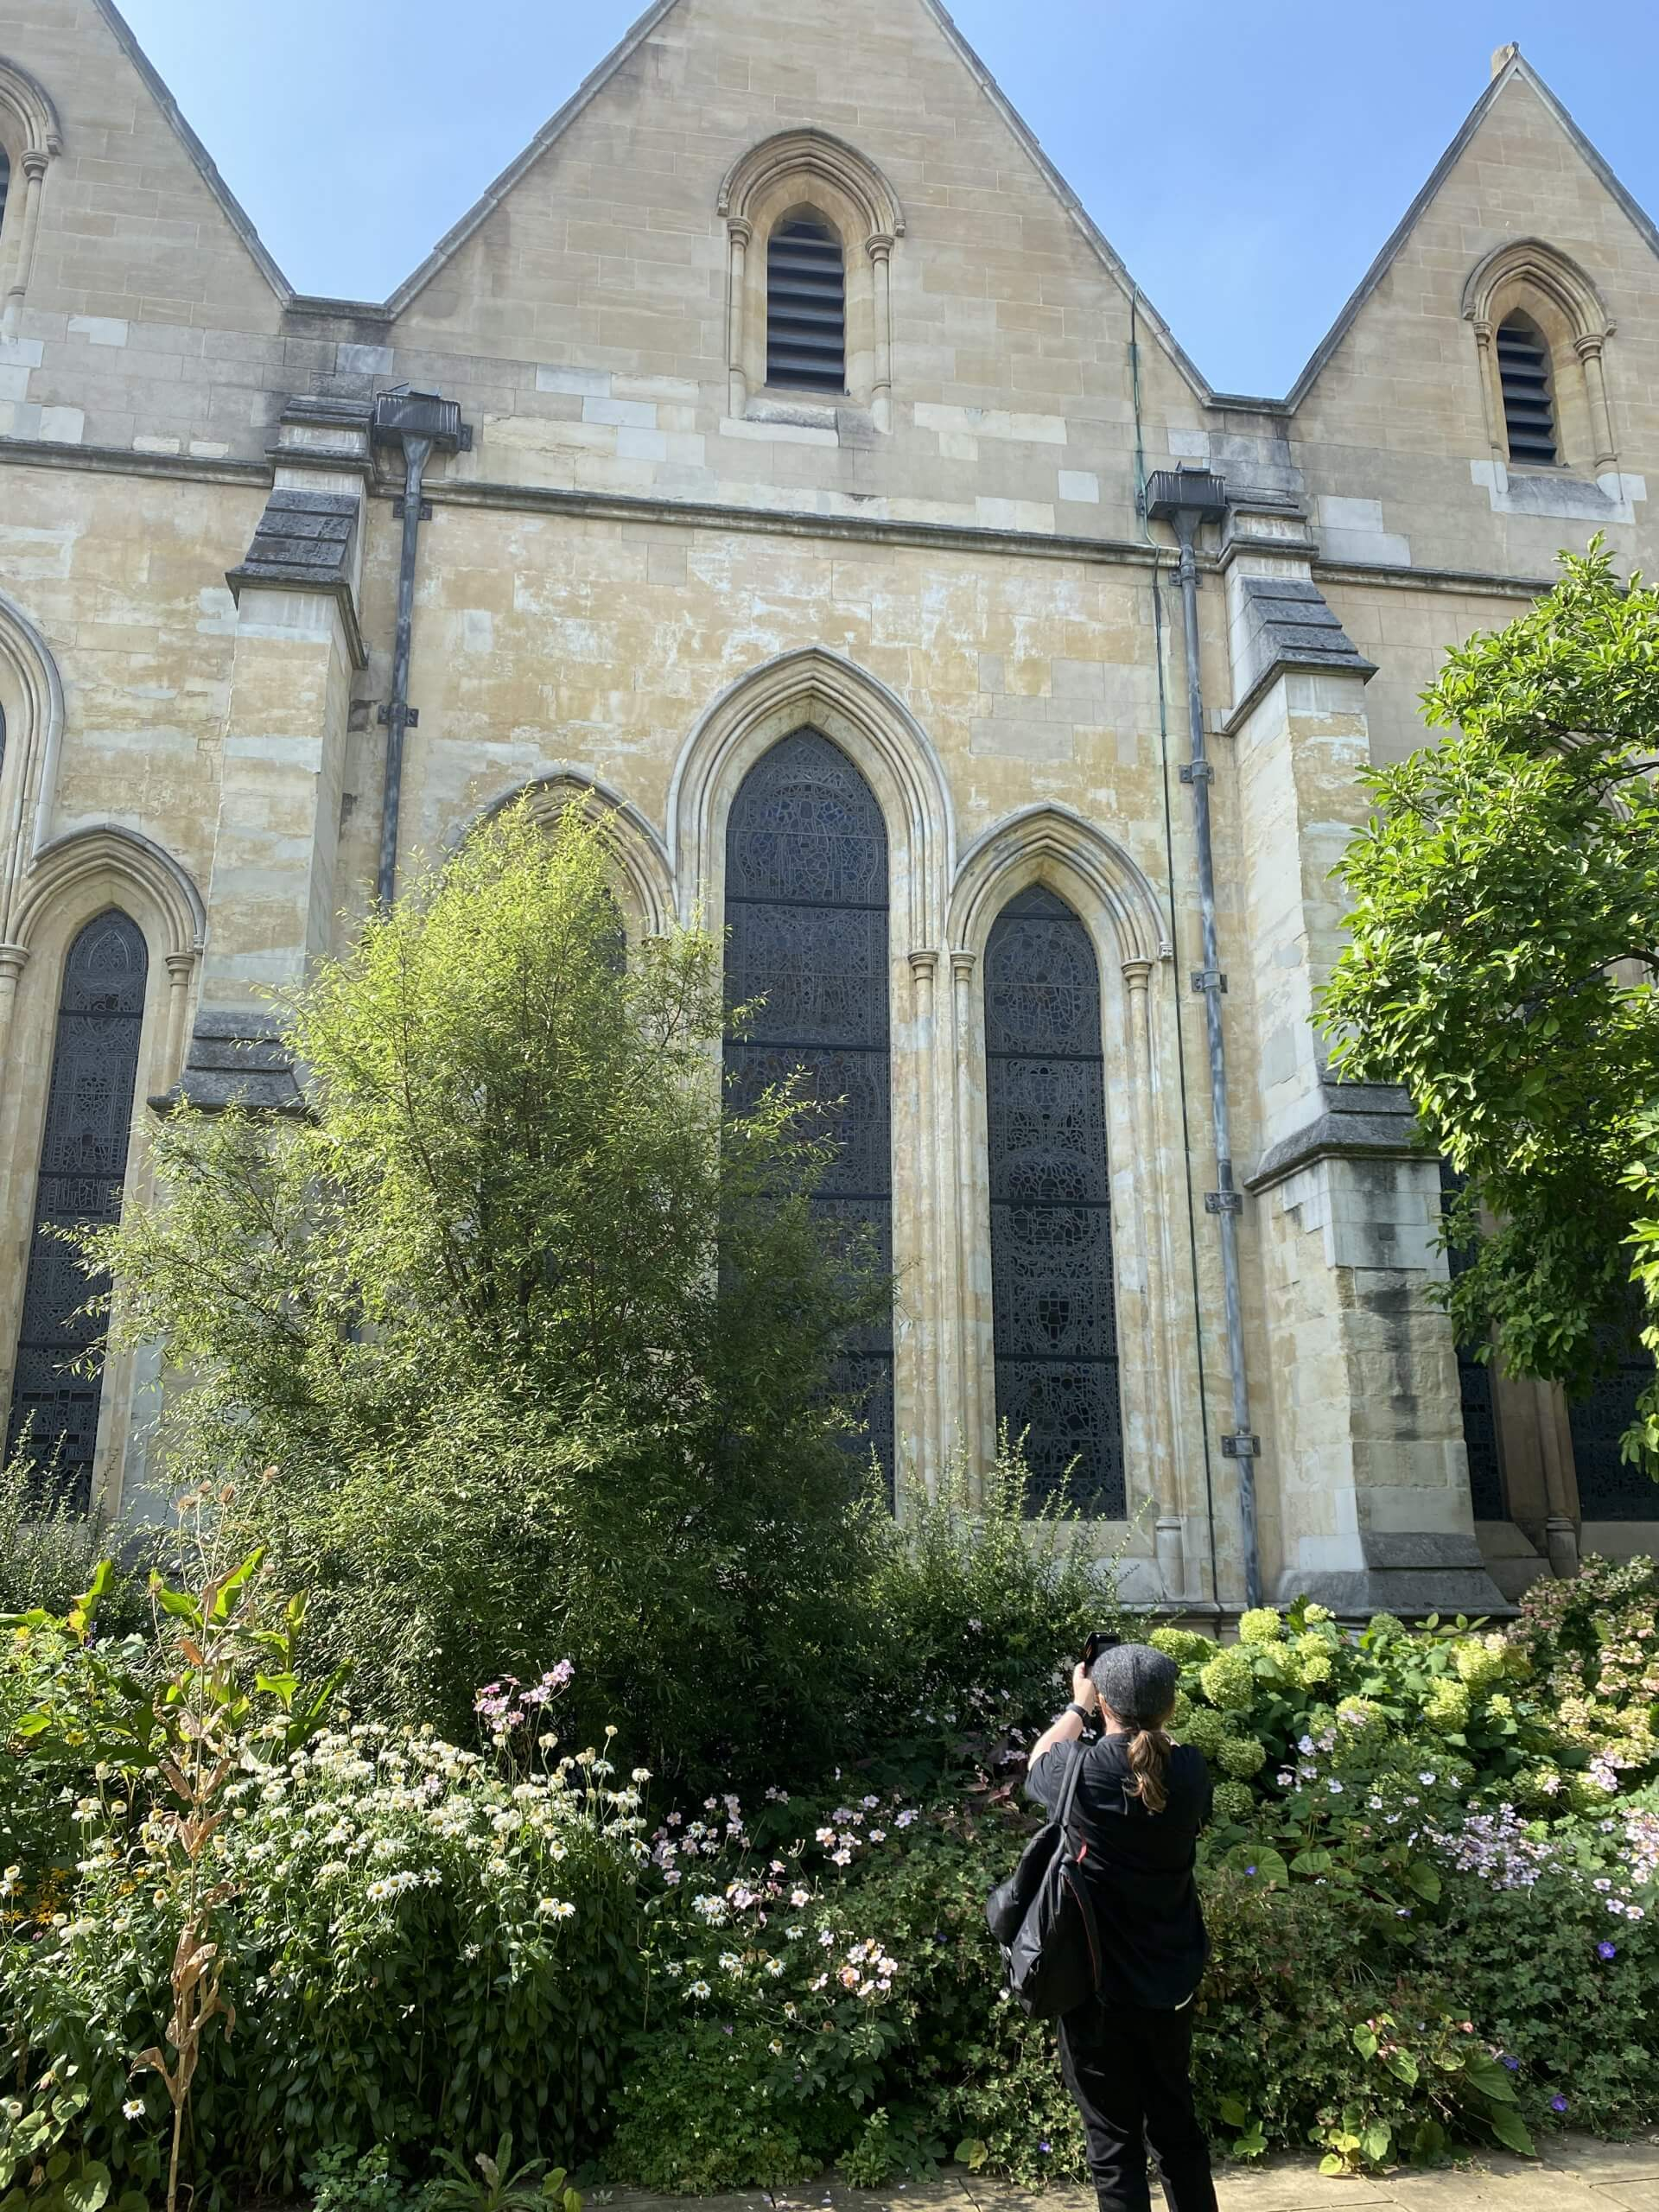 The Master's Garden looking at Temple Church